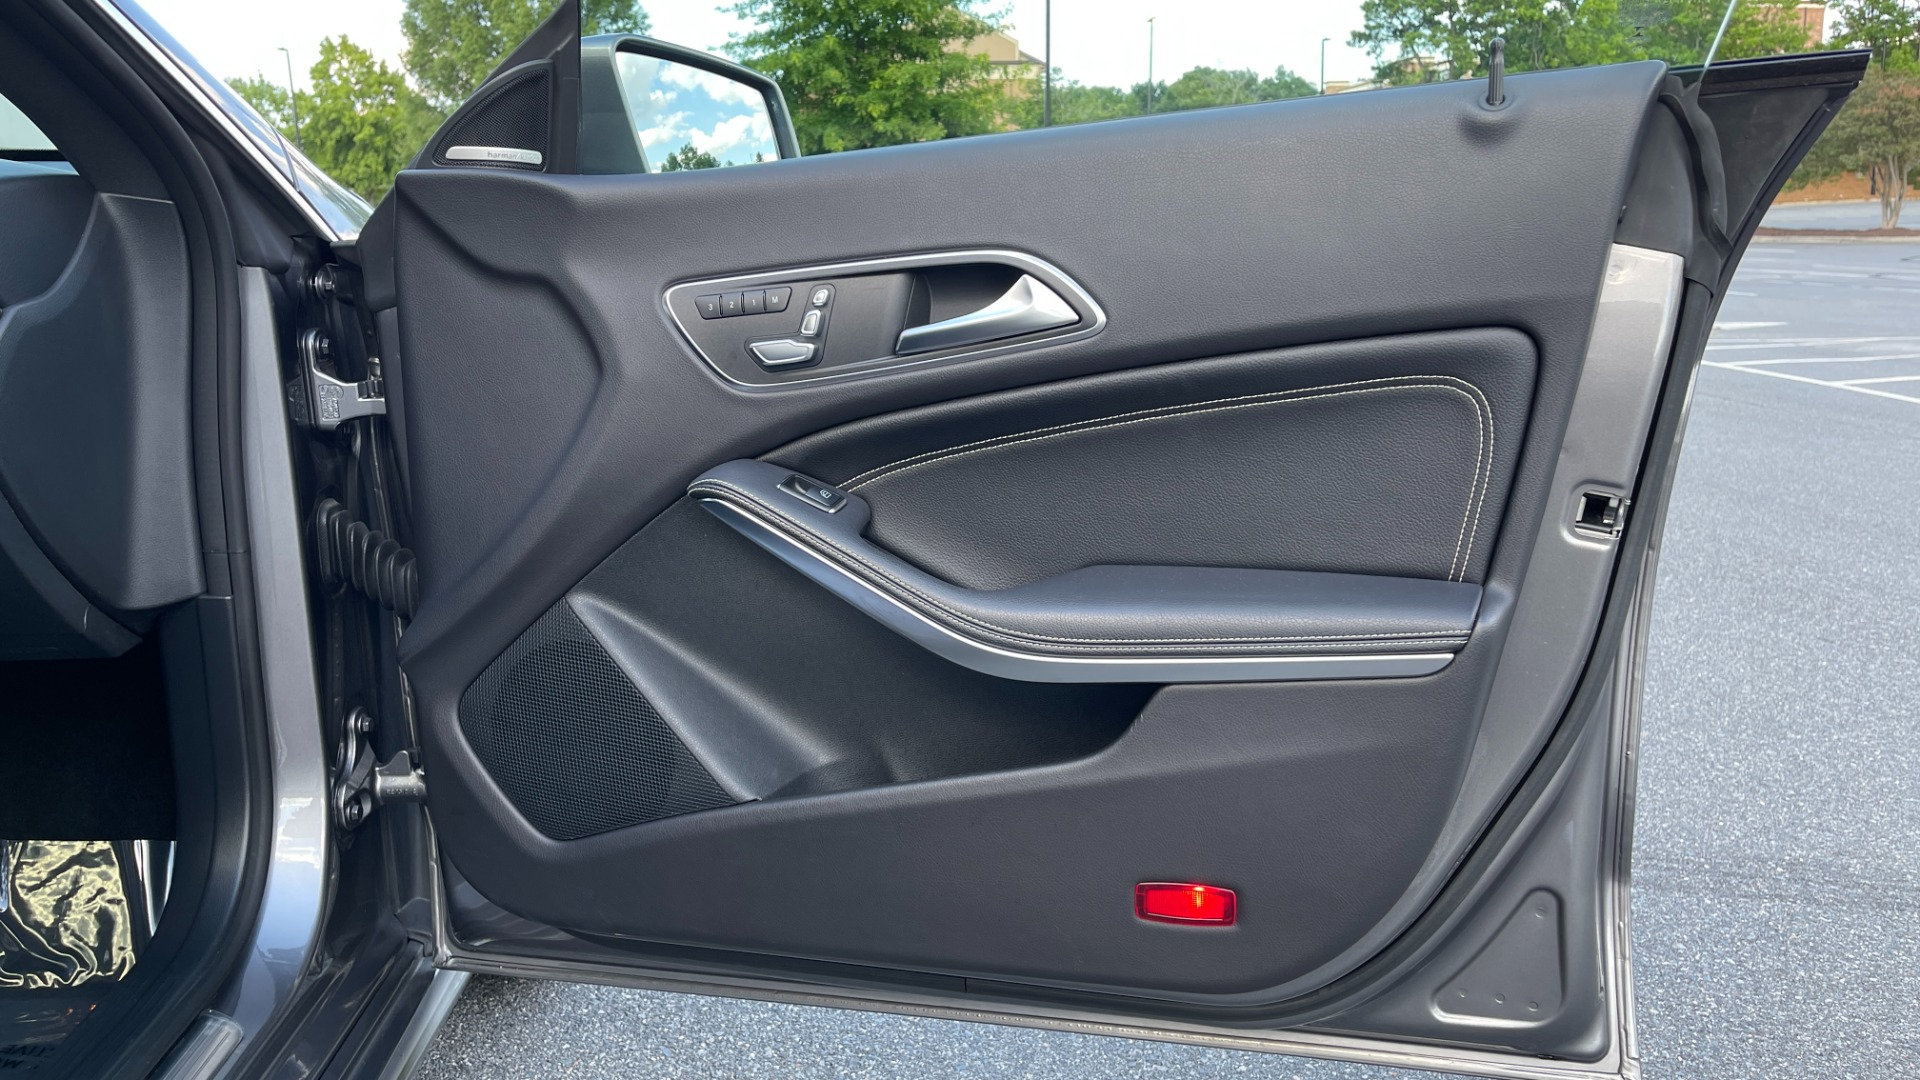 Used 2019 Mercedes-Benz CLA 250 4MATIC PREM & CONV PKG / APPLE / PANO-ROOF / H/K SND / REARVIEW for sale $29,795 at Formula Imports in Charlotte NC 28227 62